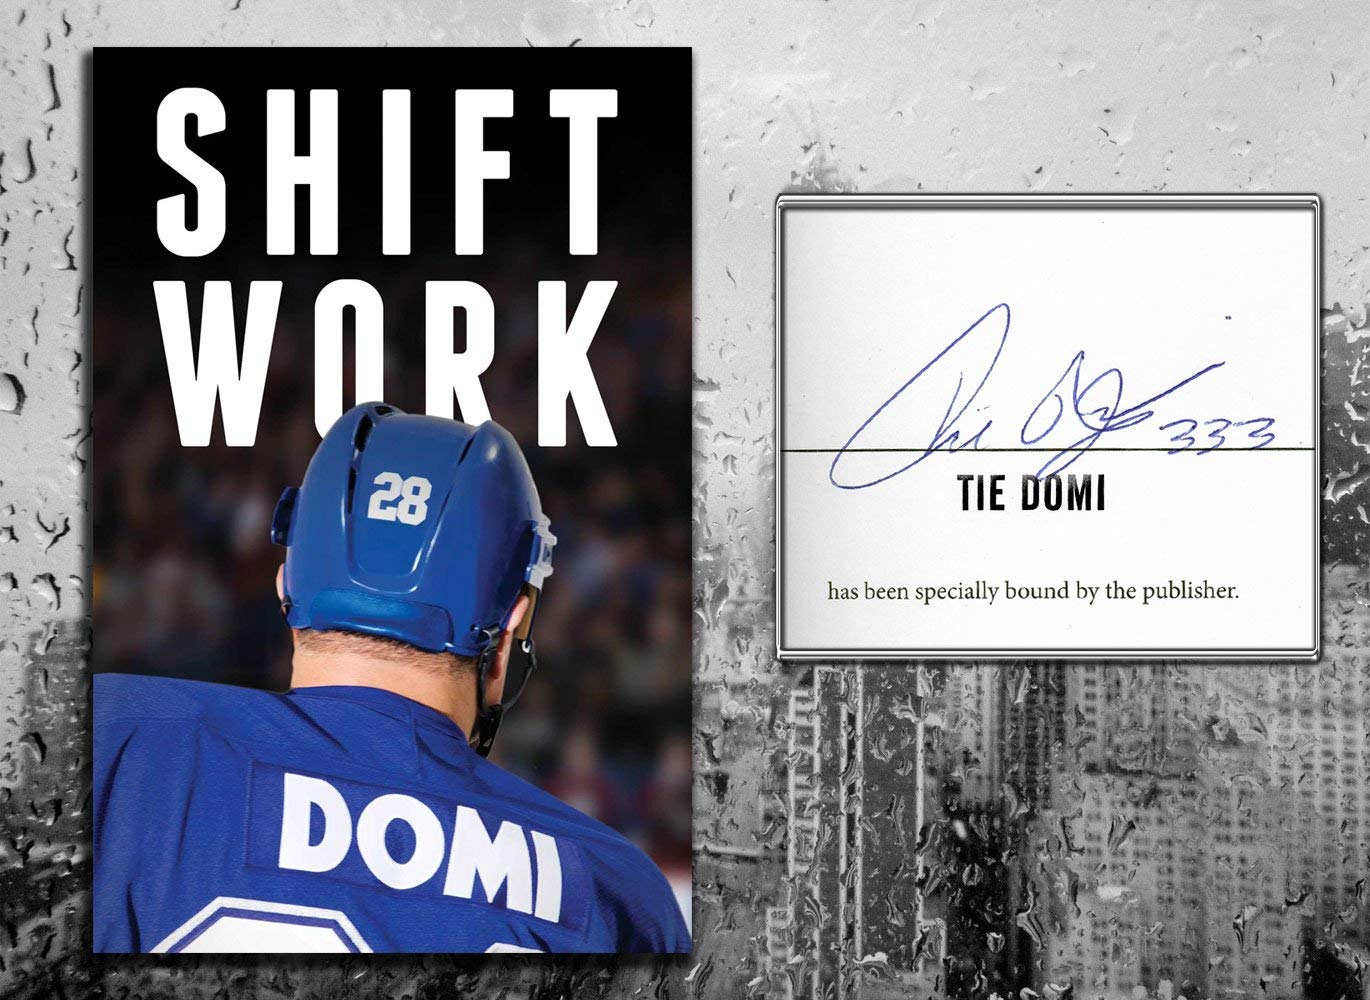 Tie Domi SHIFT WORK Signed Hardcover Book sportauthentix